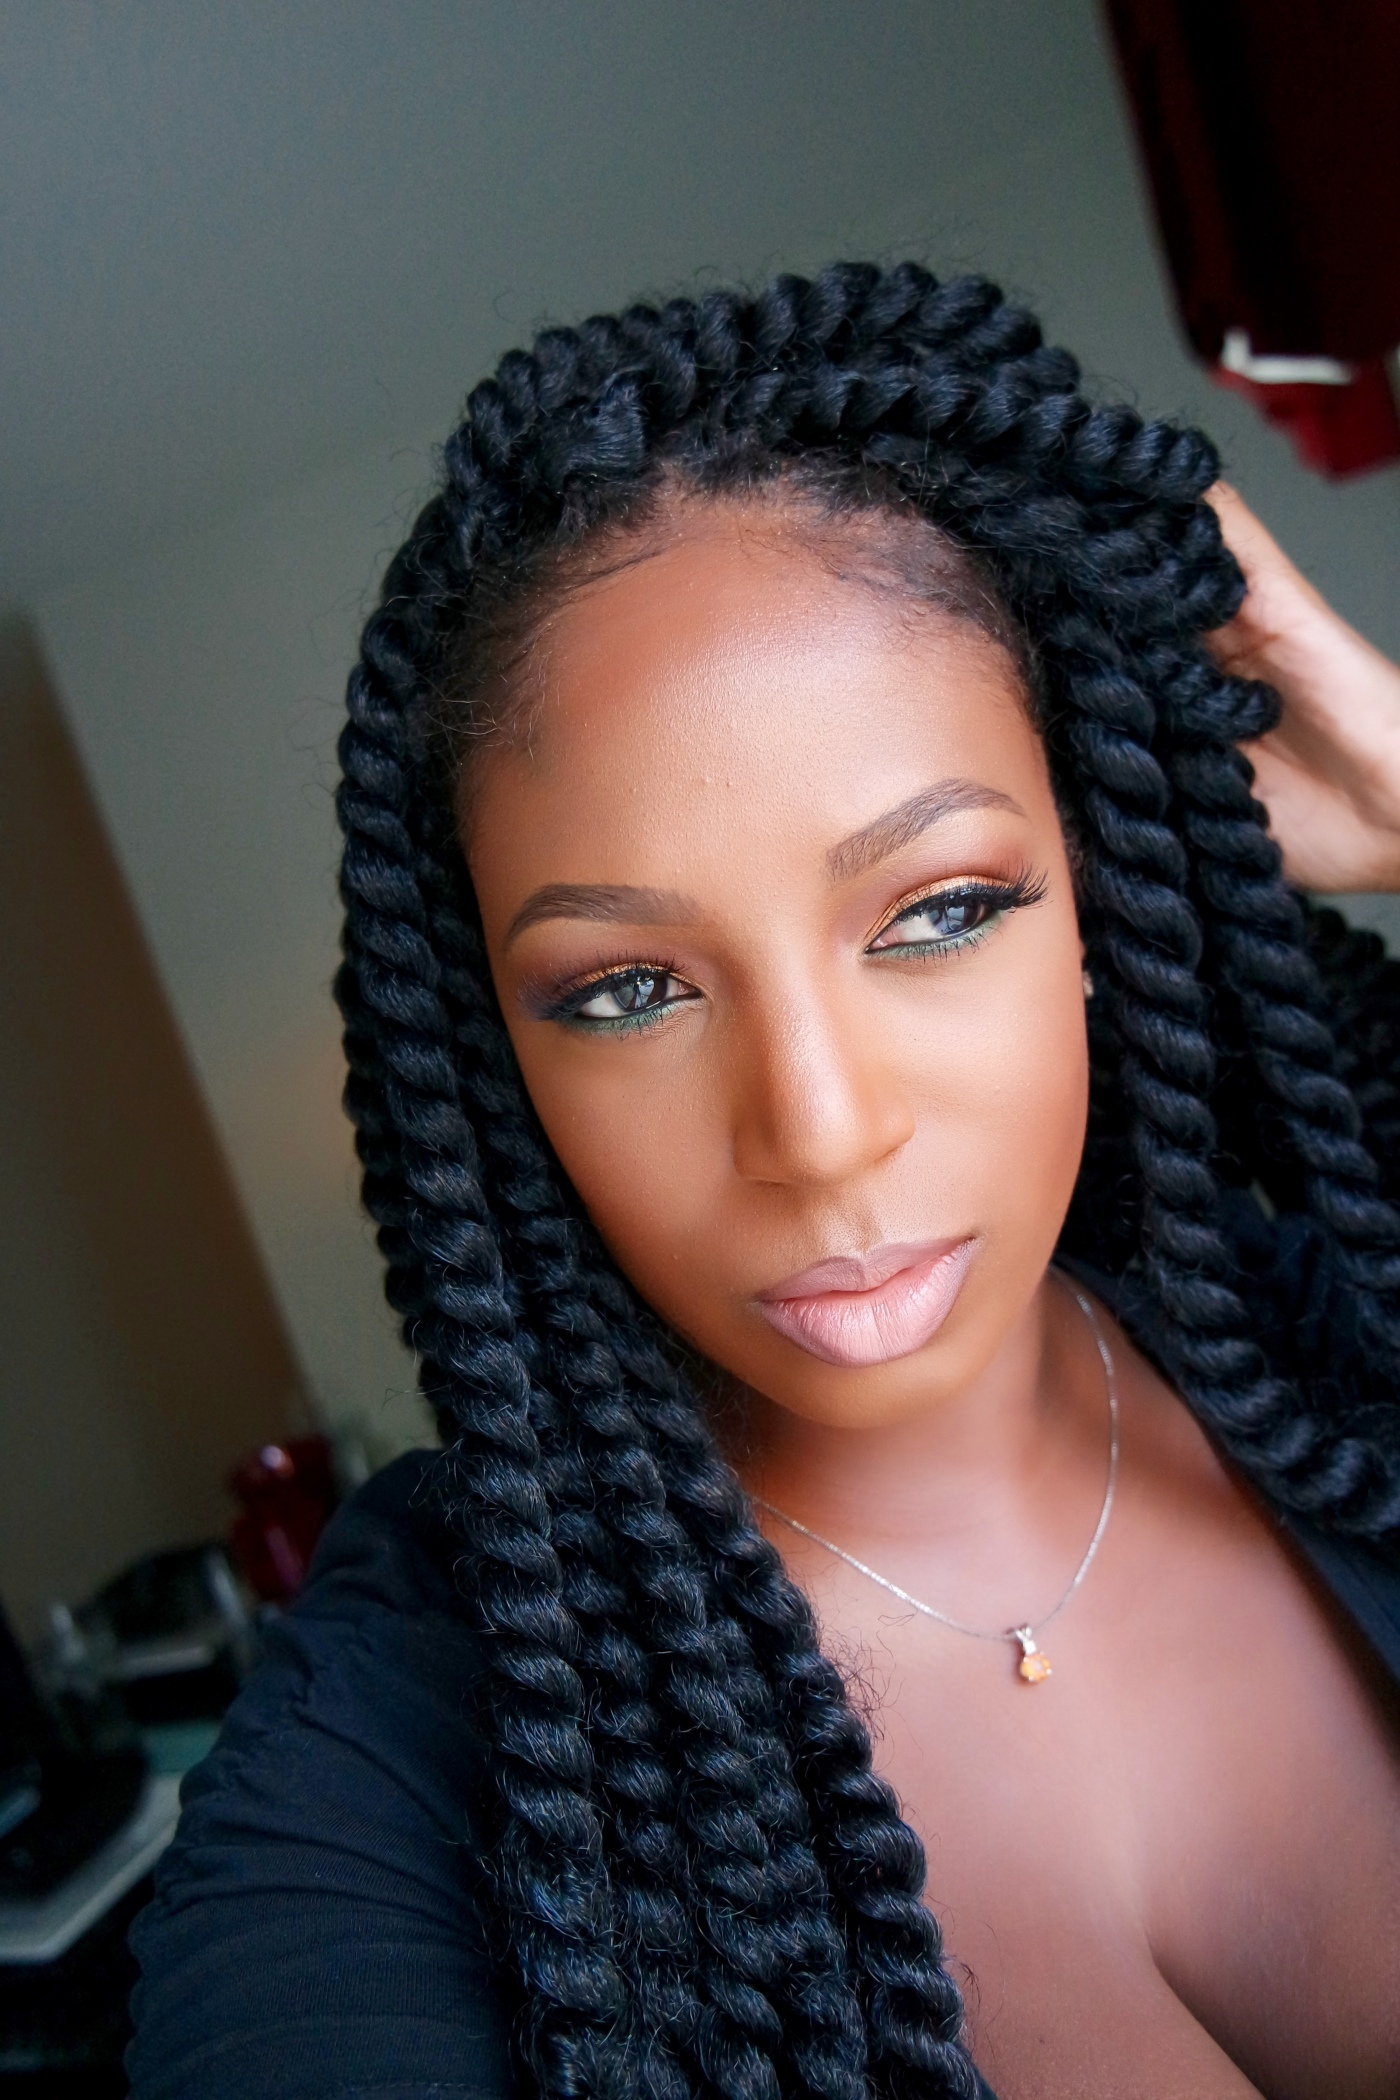 Crochet Hair At Night : ... talking hair specifically my current protective style crochet braids i